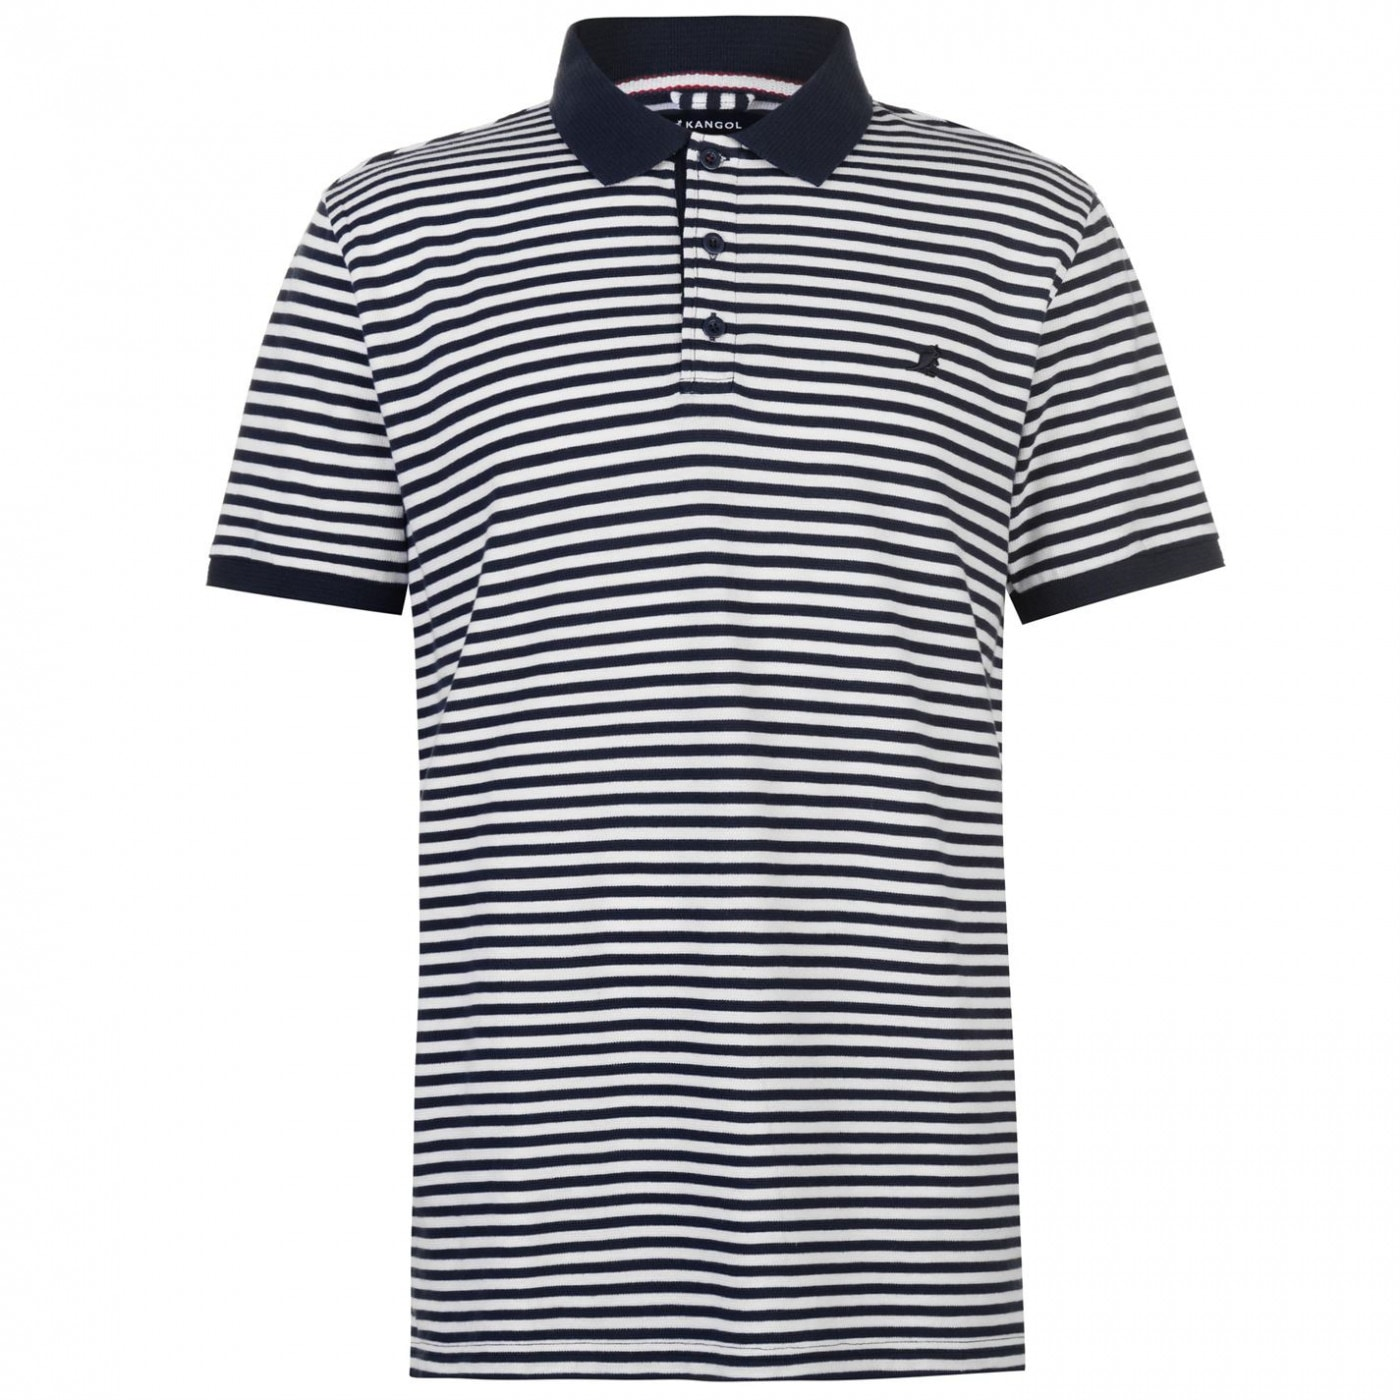 Kangol Pin Stripe Polo Shirt Mens